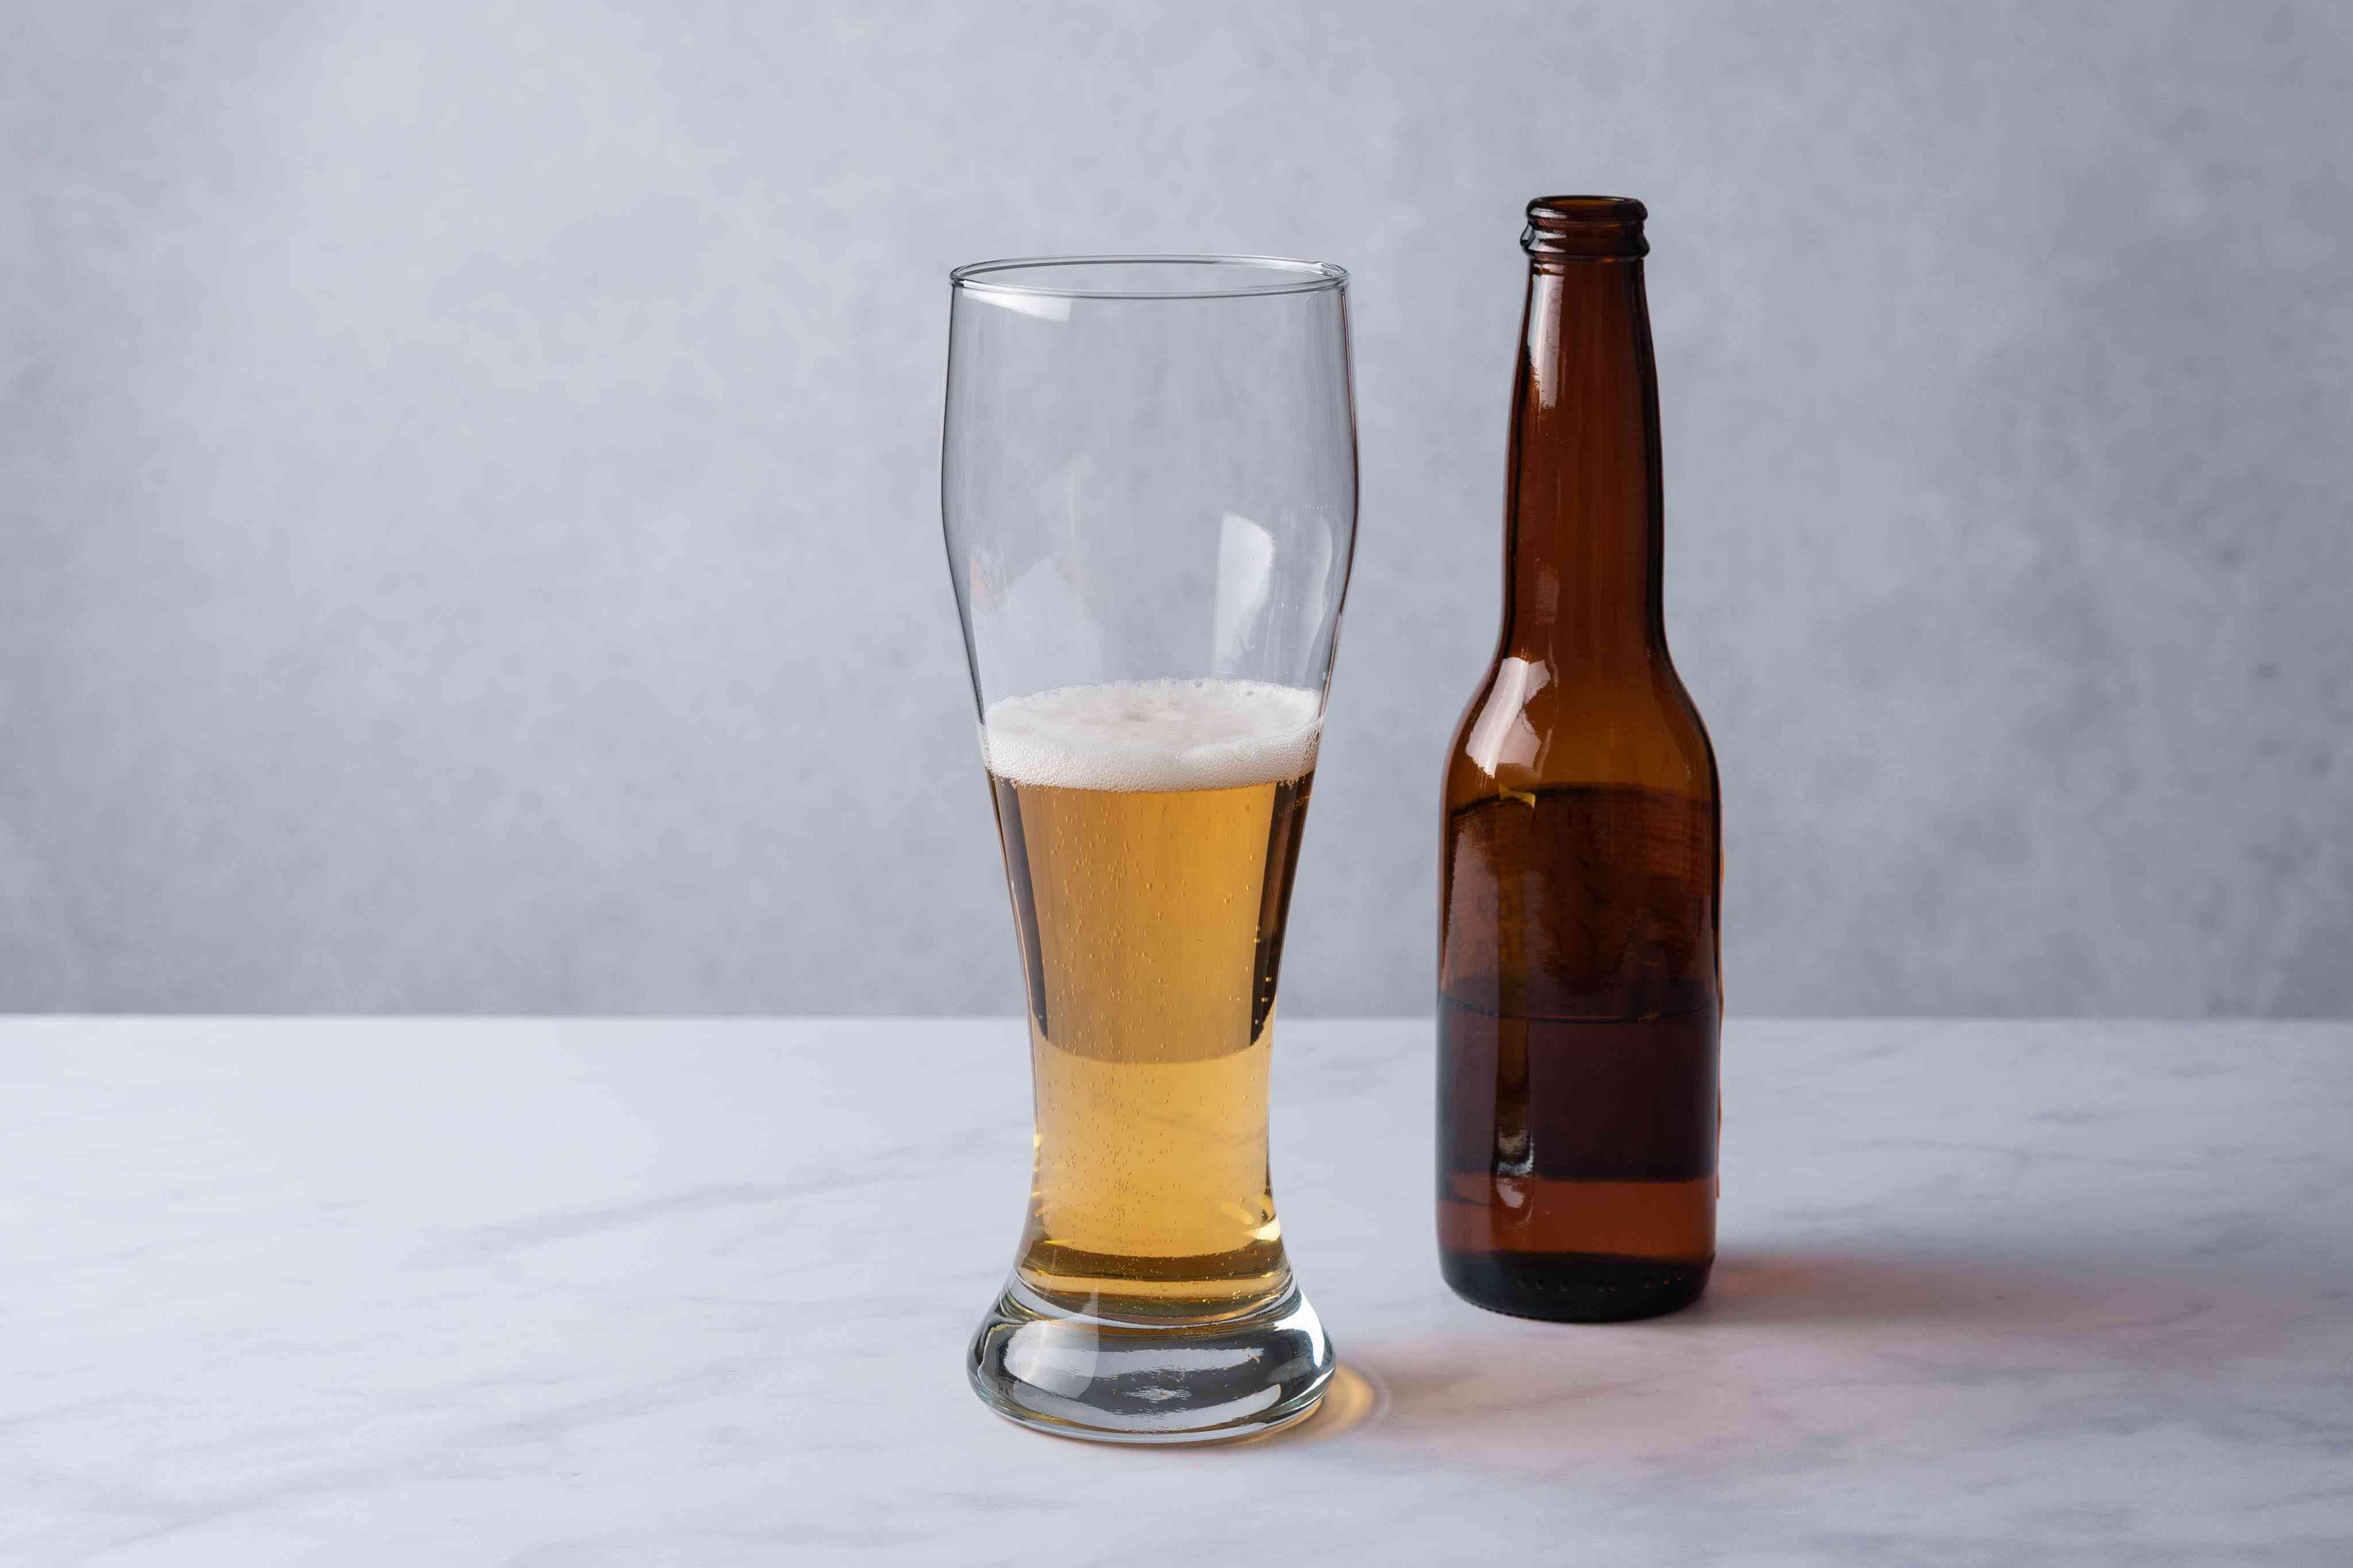 Pour the beer into a pint glass until it is about half full